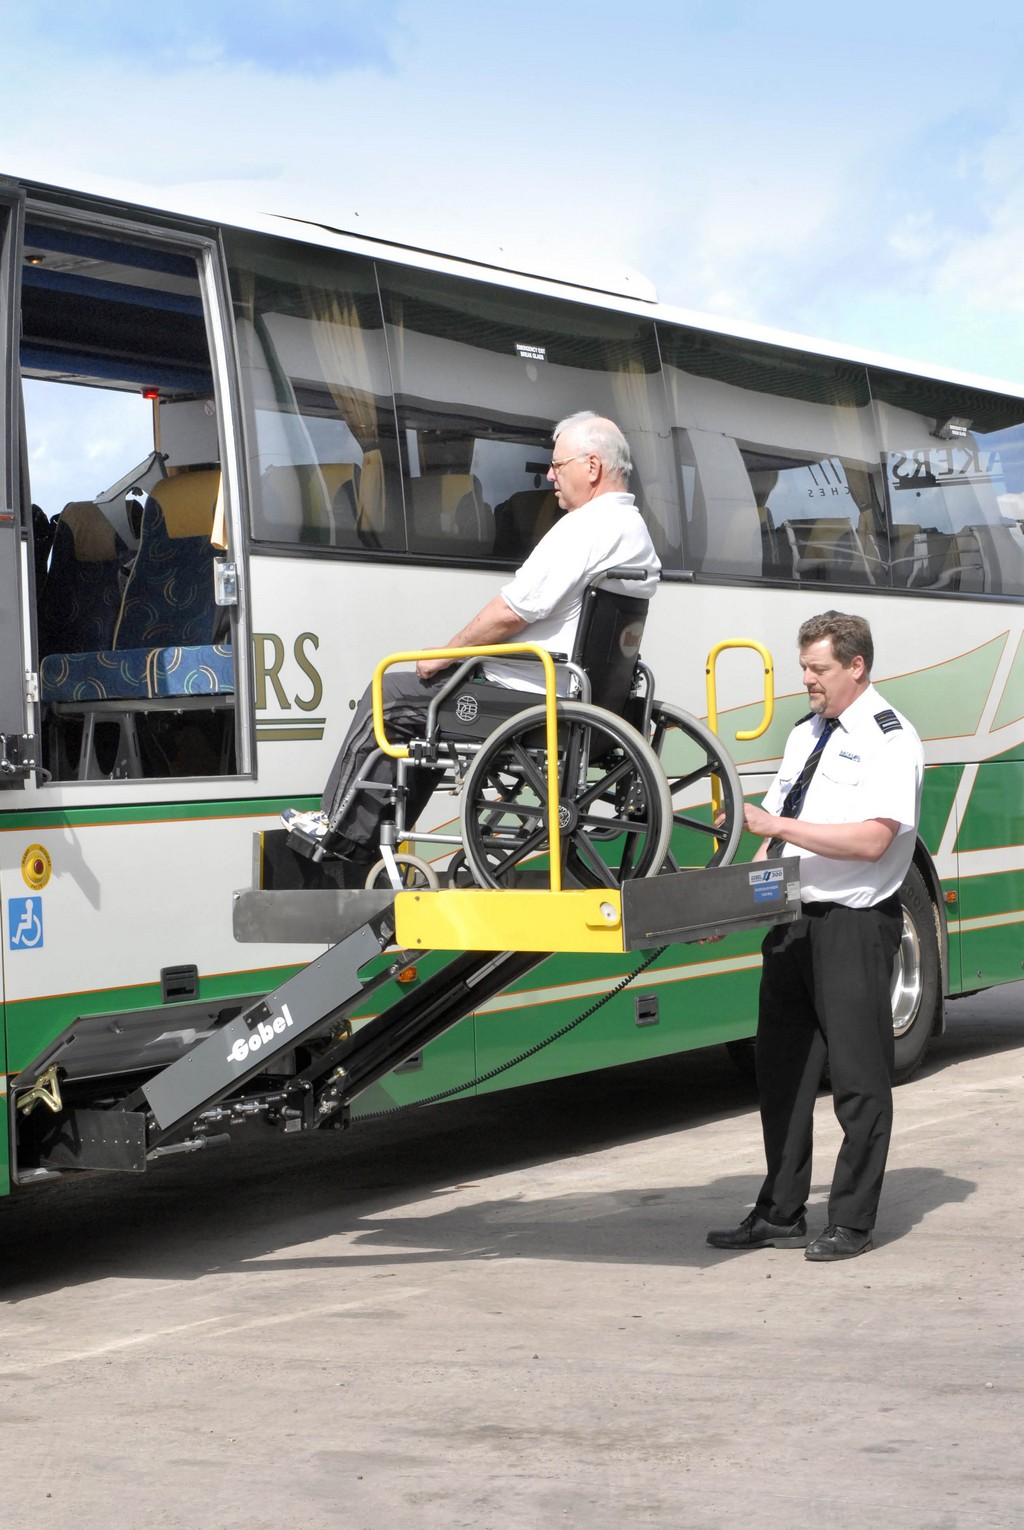 overhead wheelchair lift, wheelchair lifts for trucks, rear hydraulic wheelchair lifts for van, school bus violent wheelchair lifts